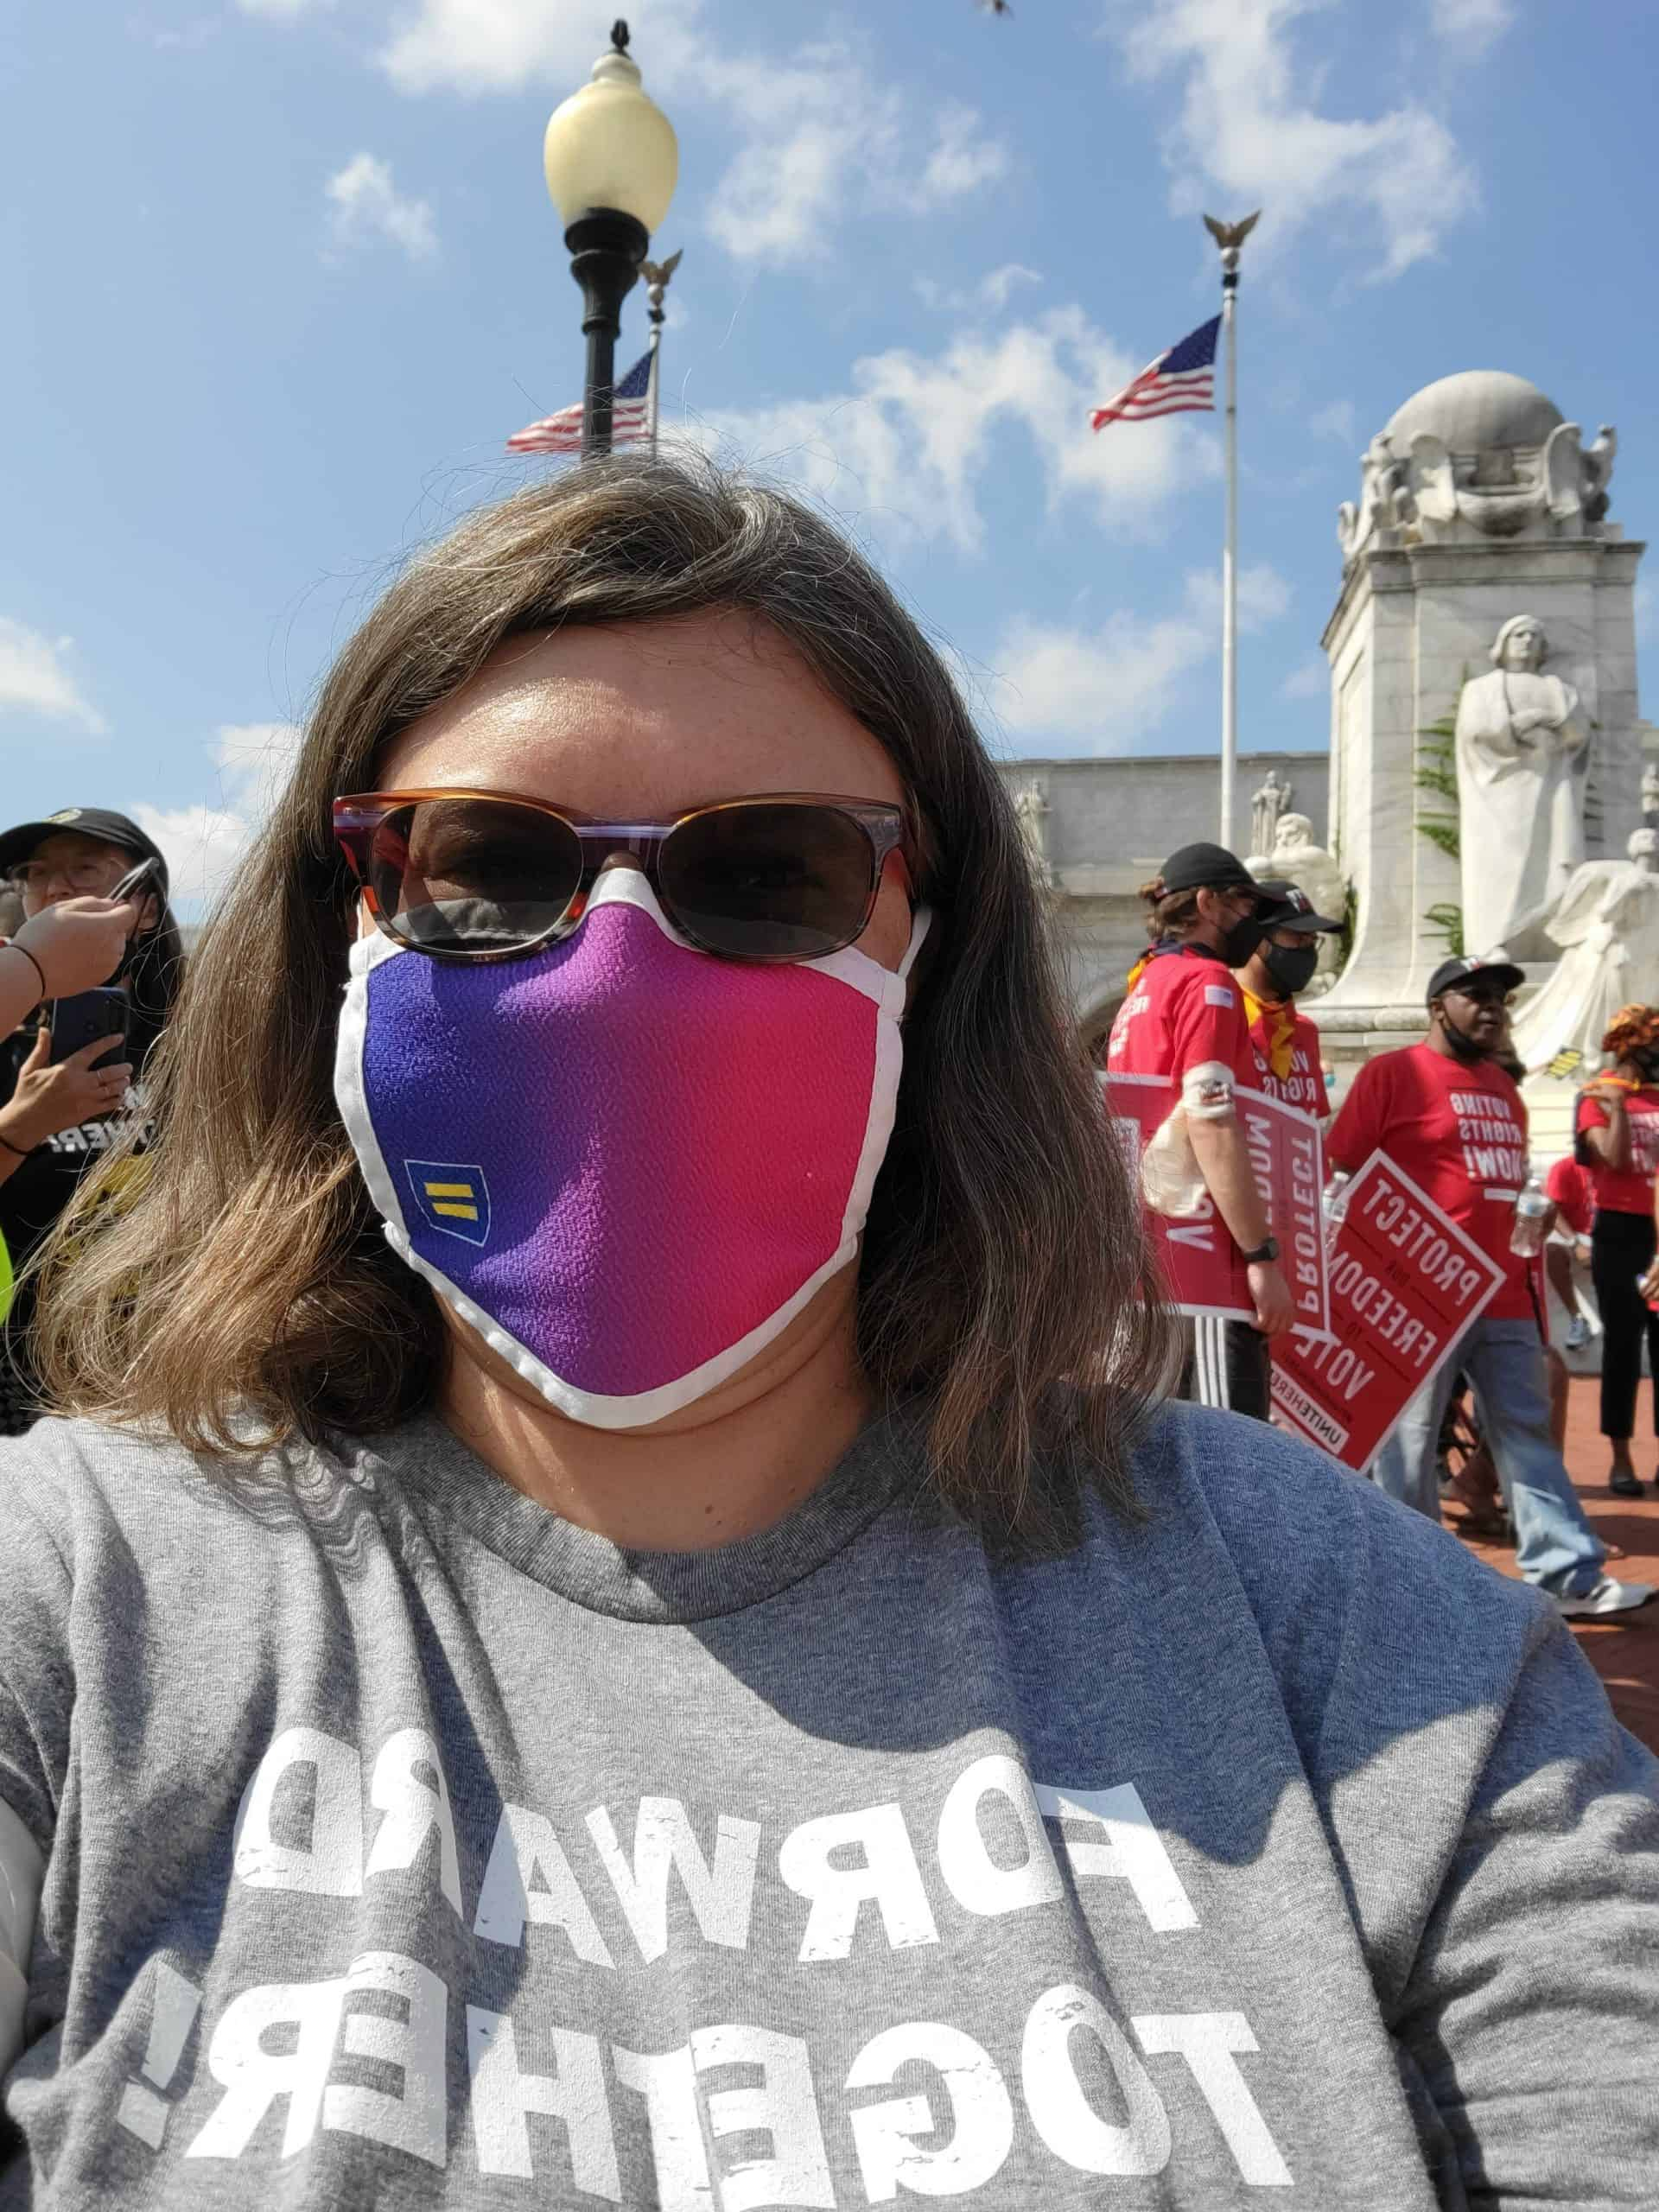 Alison in Bi mask at Poor People's Campaign rally 8/2